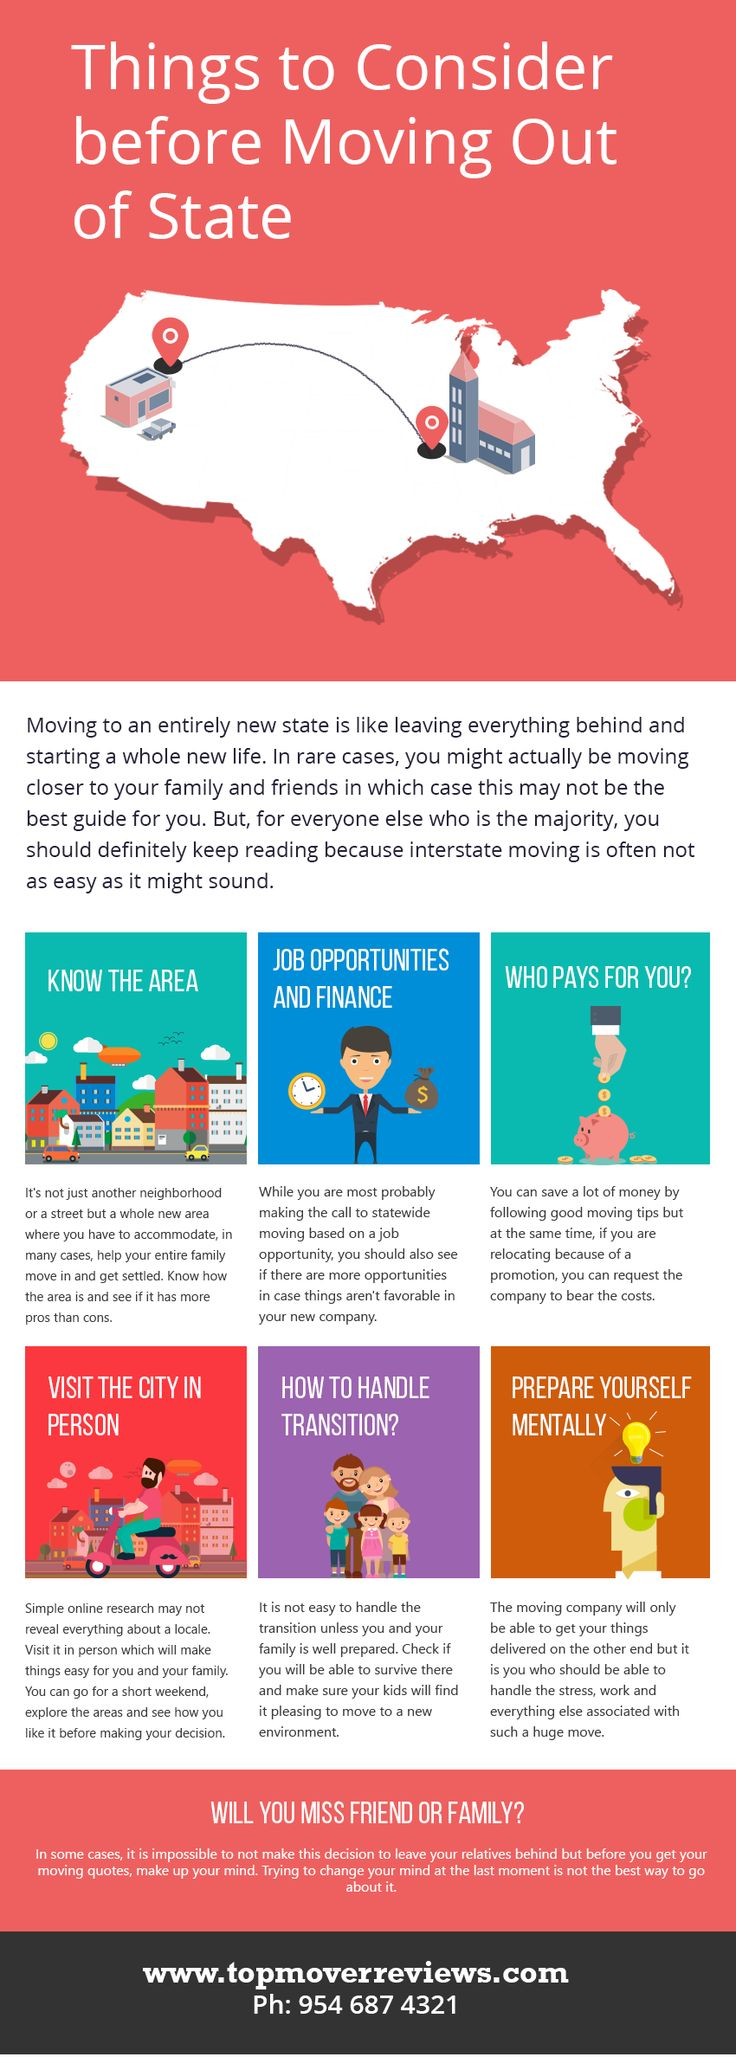 Things to Consider before Moving Out Of State - Read moving tips in top mover reviews to take a lot of things into consideration when moving out of state for the first time. http://topmoverreviews.com/things-to-consider-before-moving-out-of-state